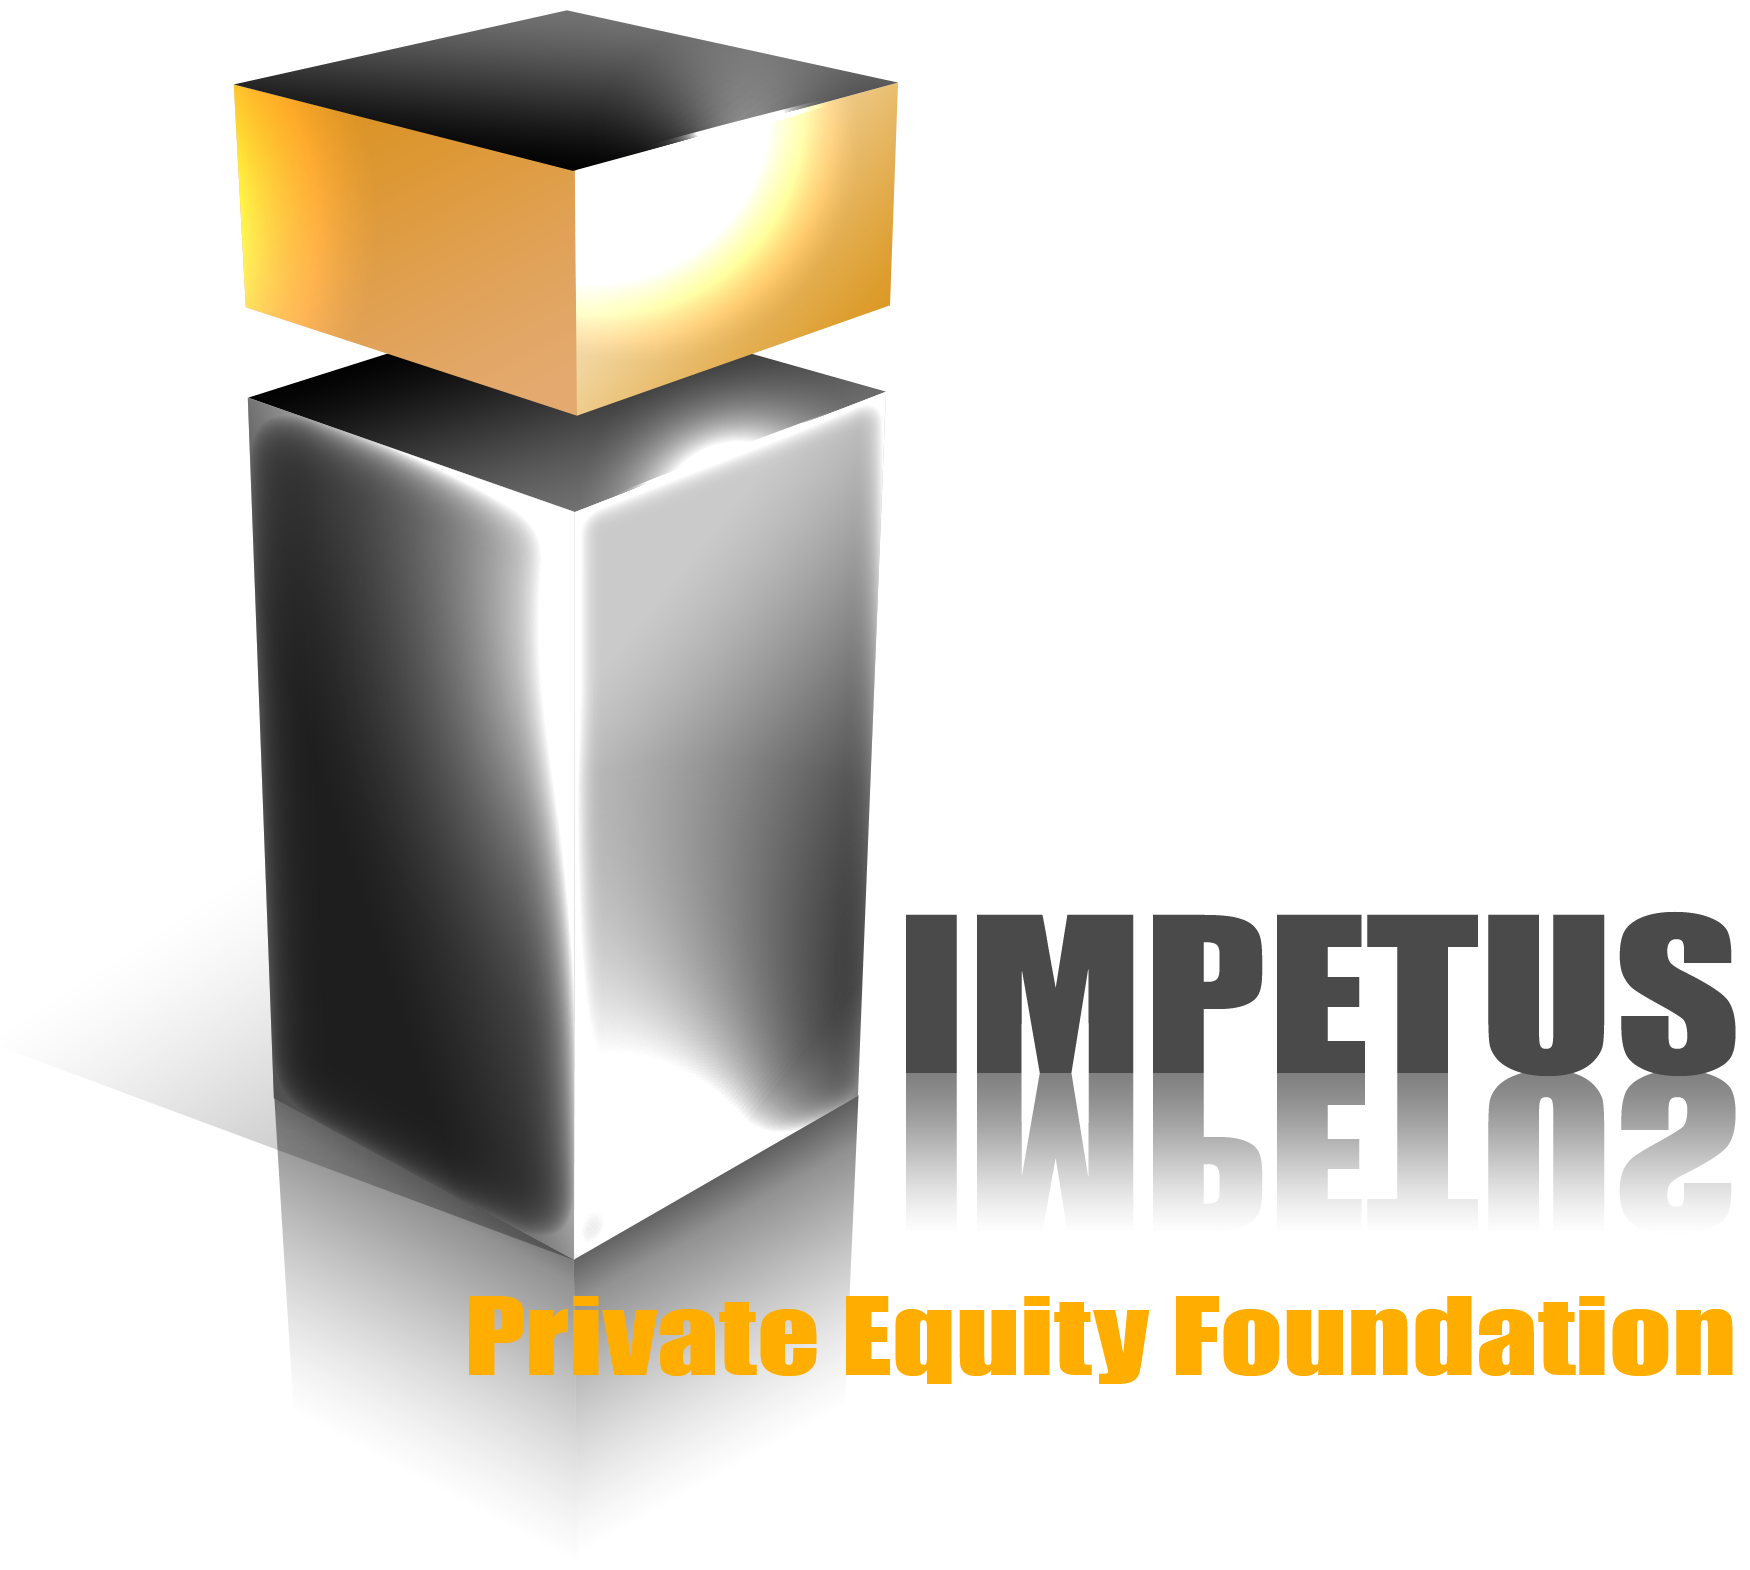 Logo Design by Abhisar Garg - Entry No. 19 in the Logo Design Contest New Logo Design for Impetus - The Private Equity Foundation.